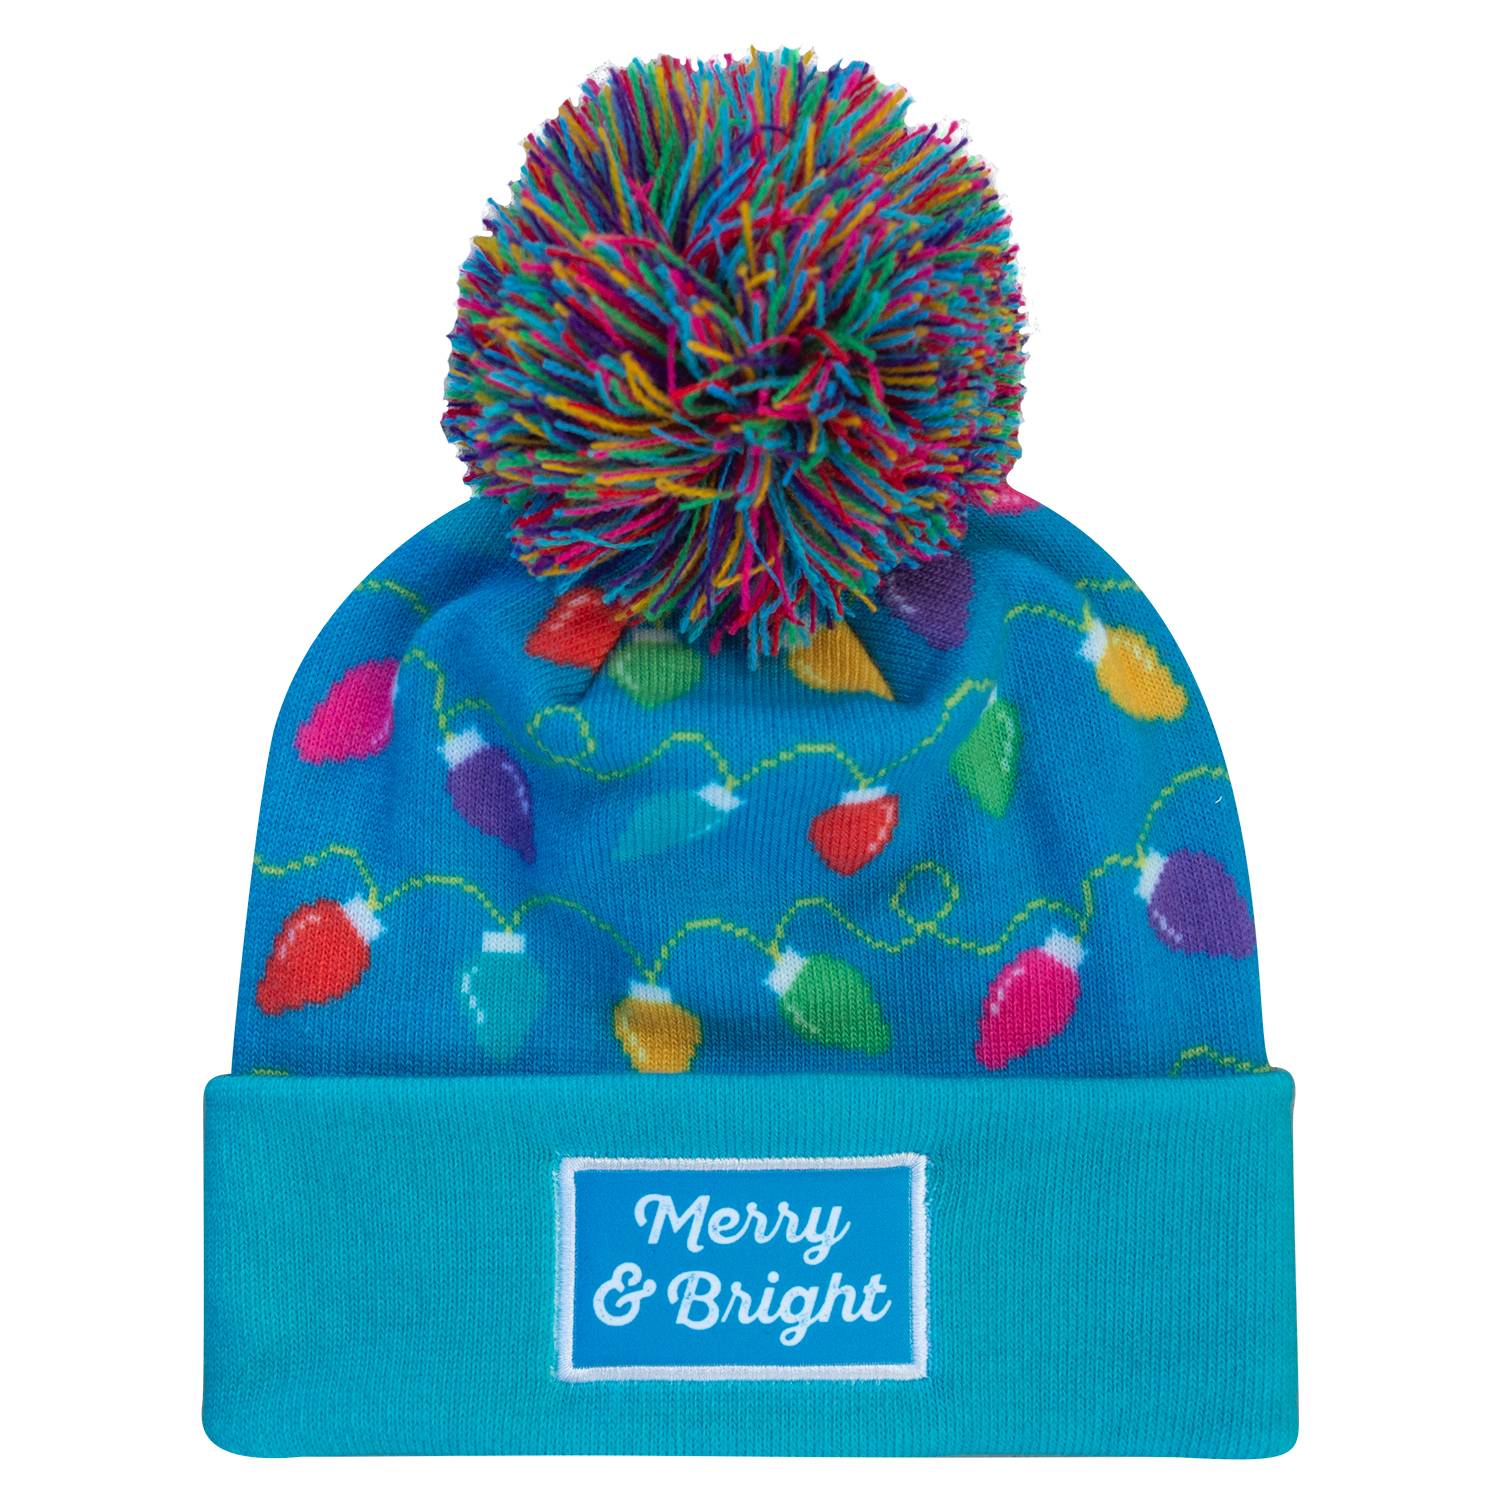 Merry   Bright – Digitally Printed Pom Pom Beanie – BOCO Gear 83940e8155a